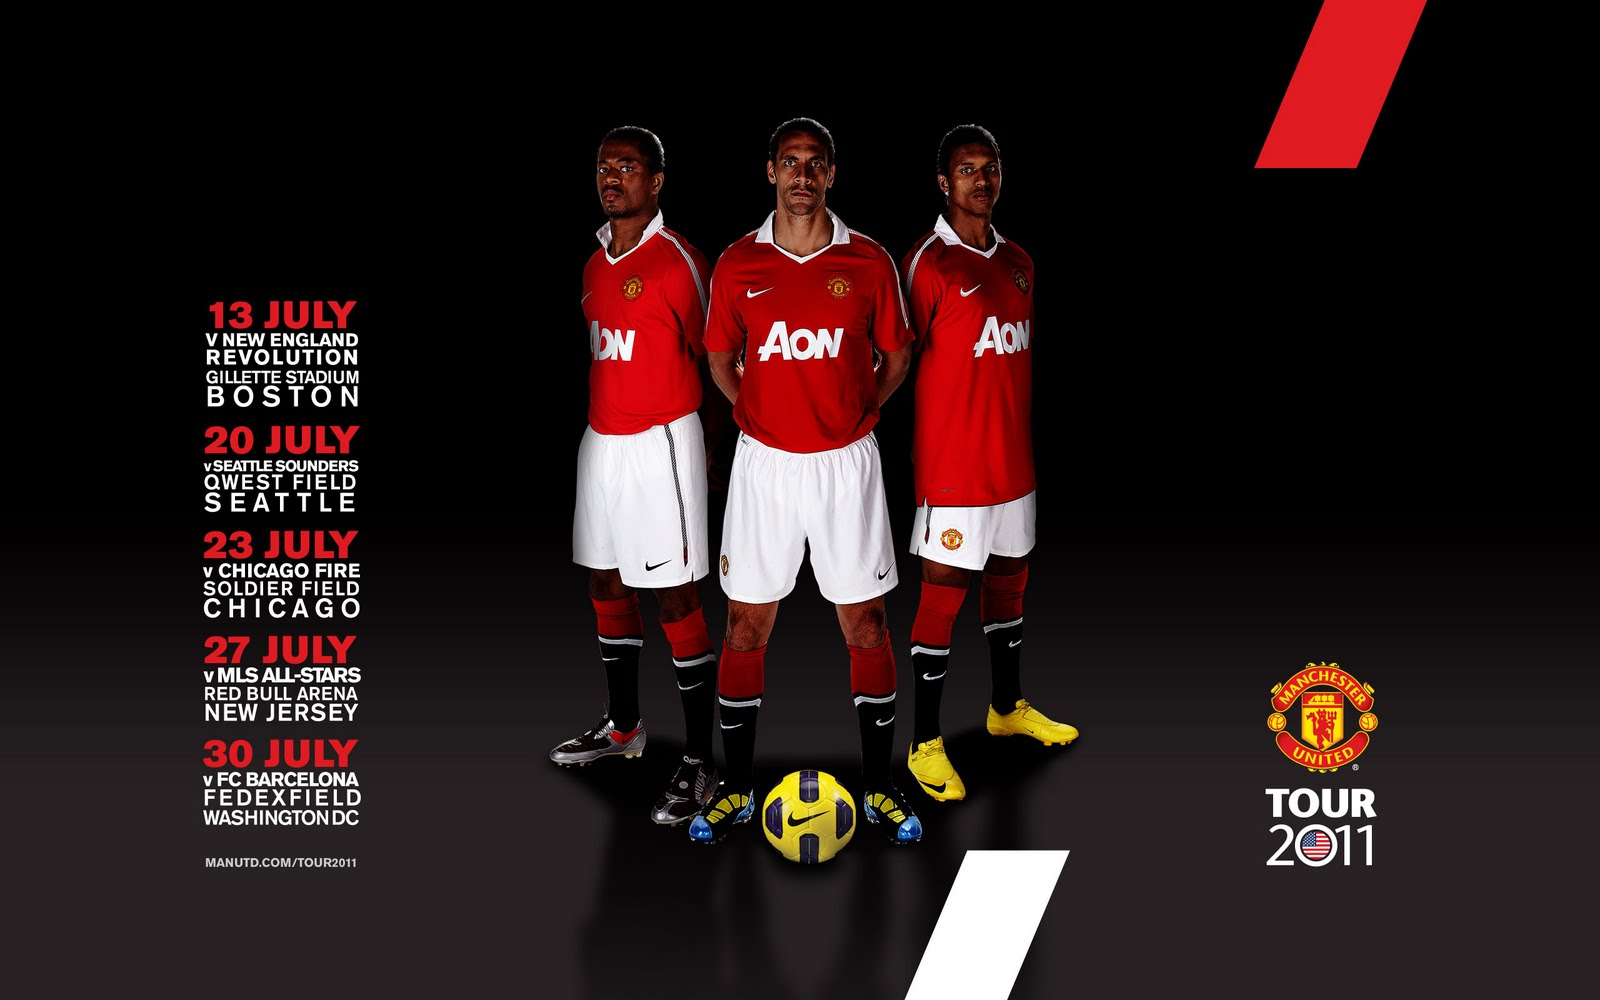 Manchester united wallpaper android phone manchester united manchester united fixtures 2011 tour wallpaper voltagebd Choice Image